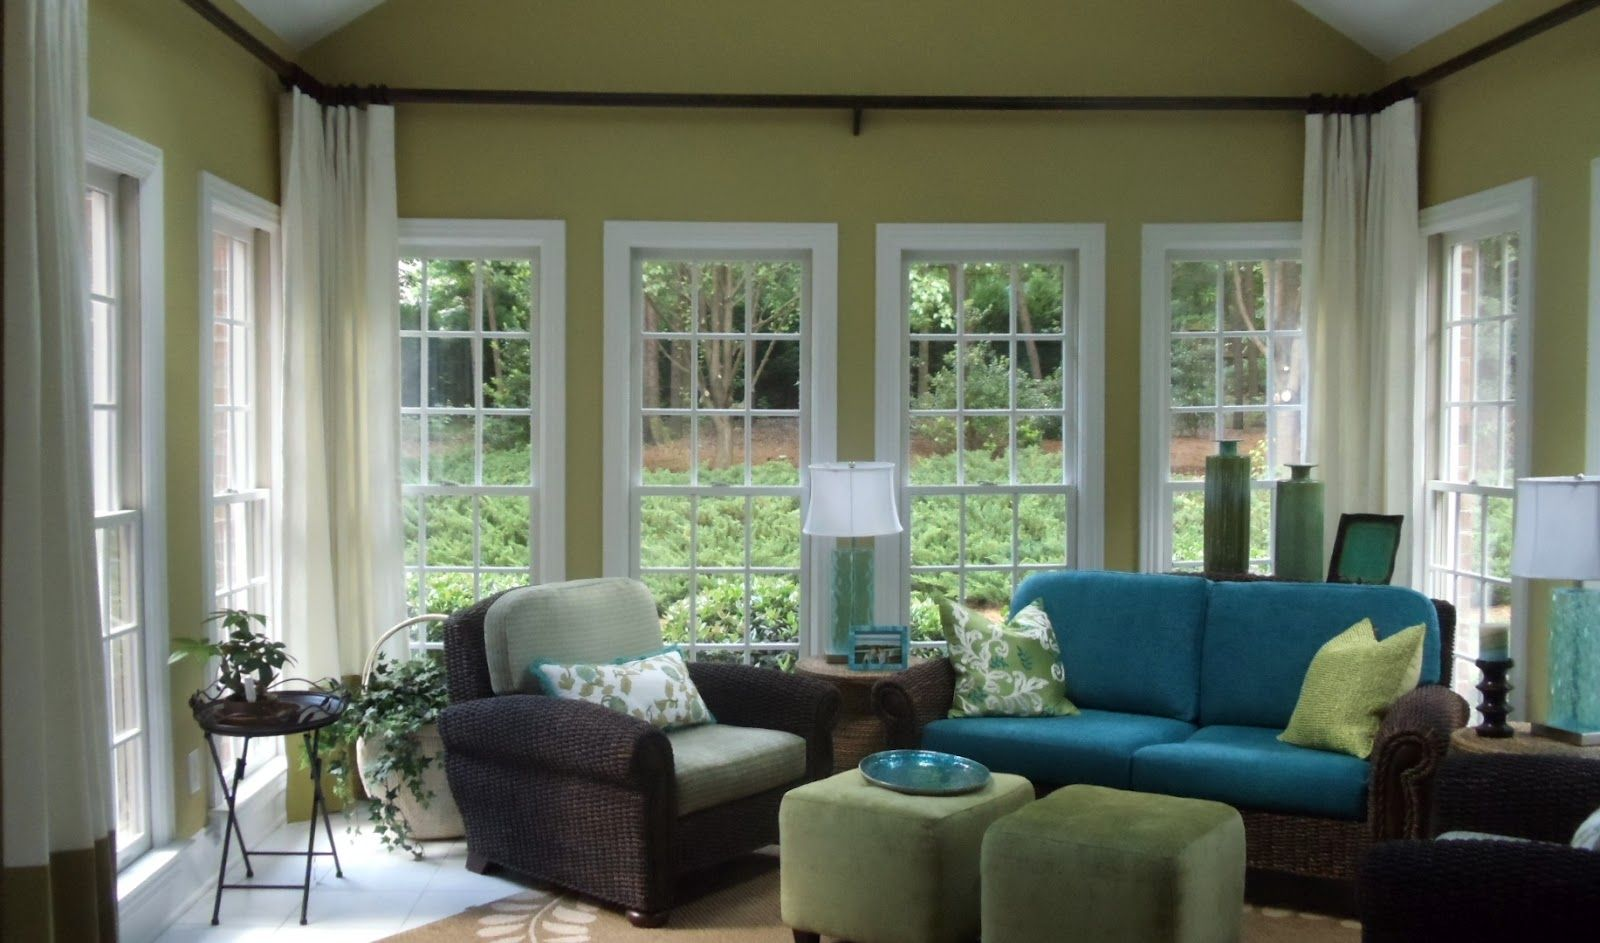 Sun room curtain idea Interior  Amusing Sunroom Interior Design Ideas  Inspiring Creativity  Modern Sunroom Interior Design Ideas With Window  TreatmentsSunroom makeover  On my list   love the higher curtain  Interior  . Sunroom Decor Ideas. Home Design Ideas